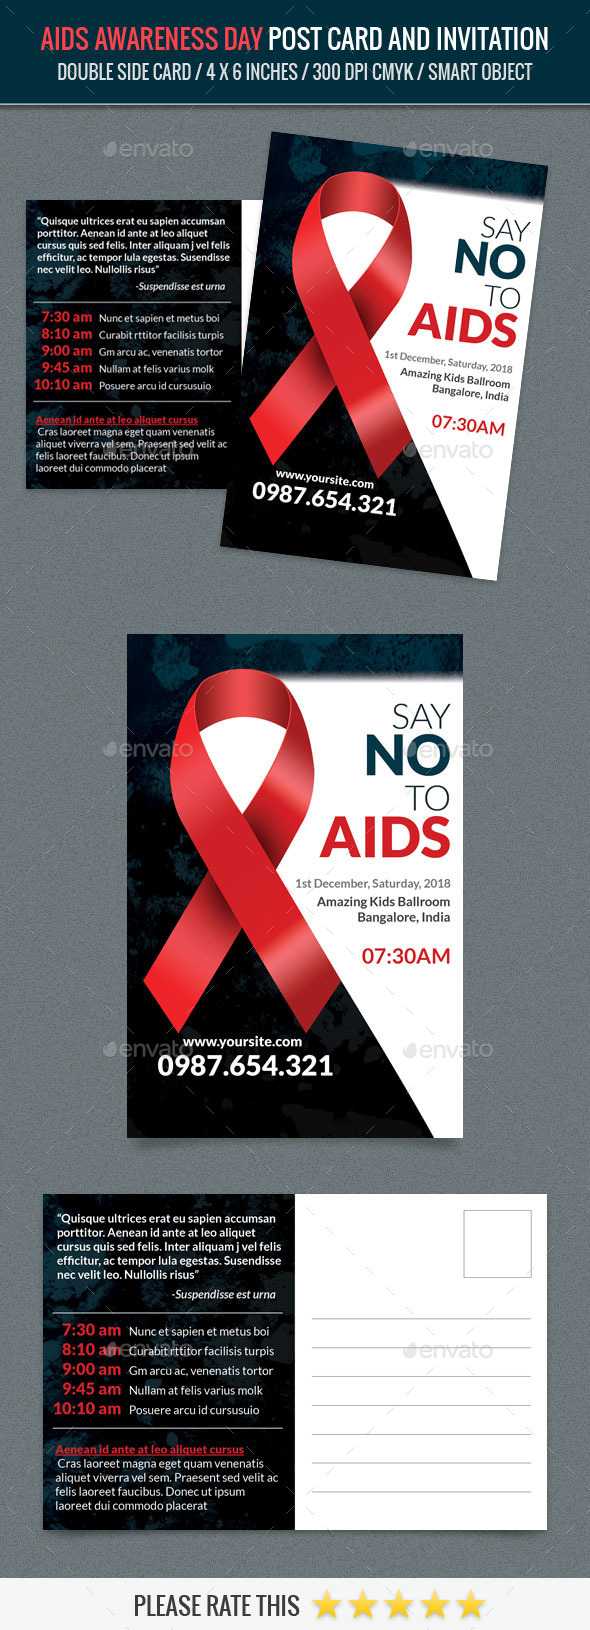 Aids Awareness Day Post Card Template